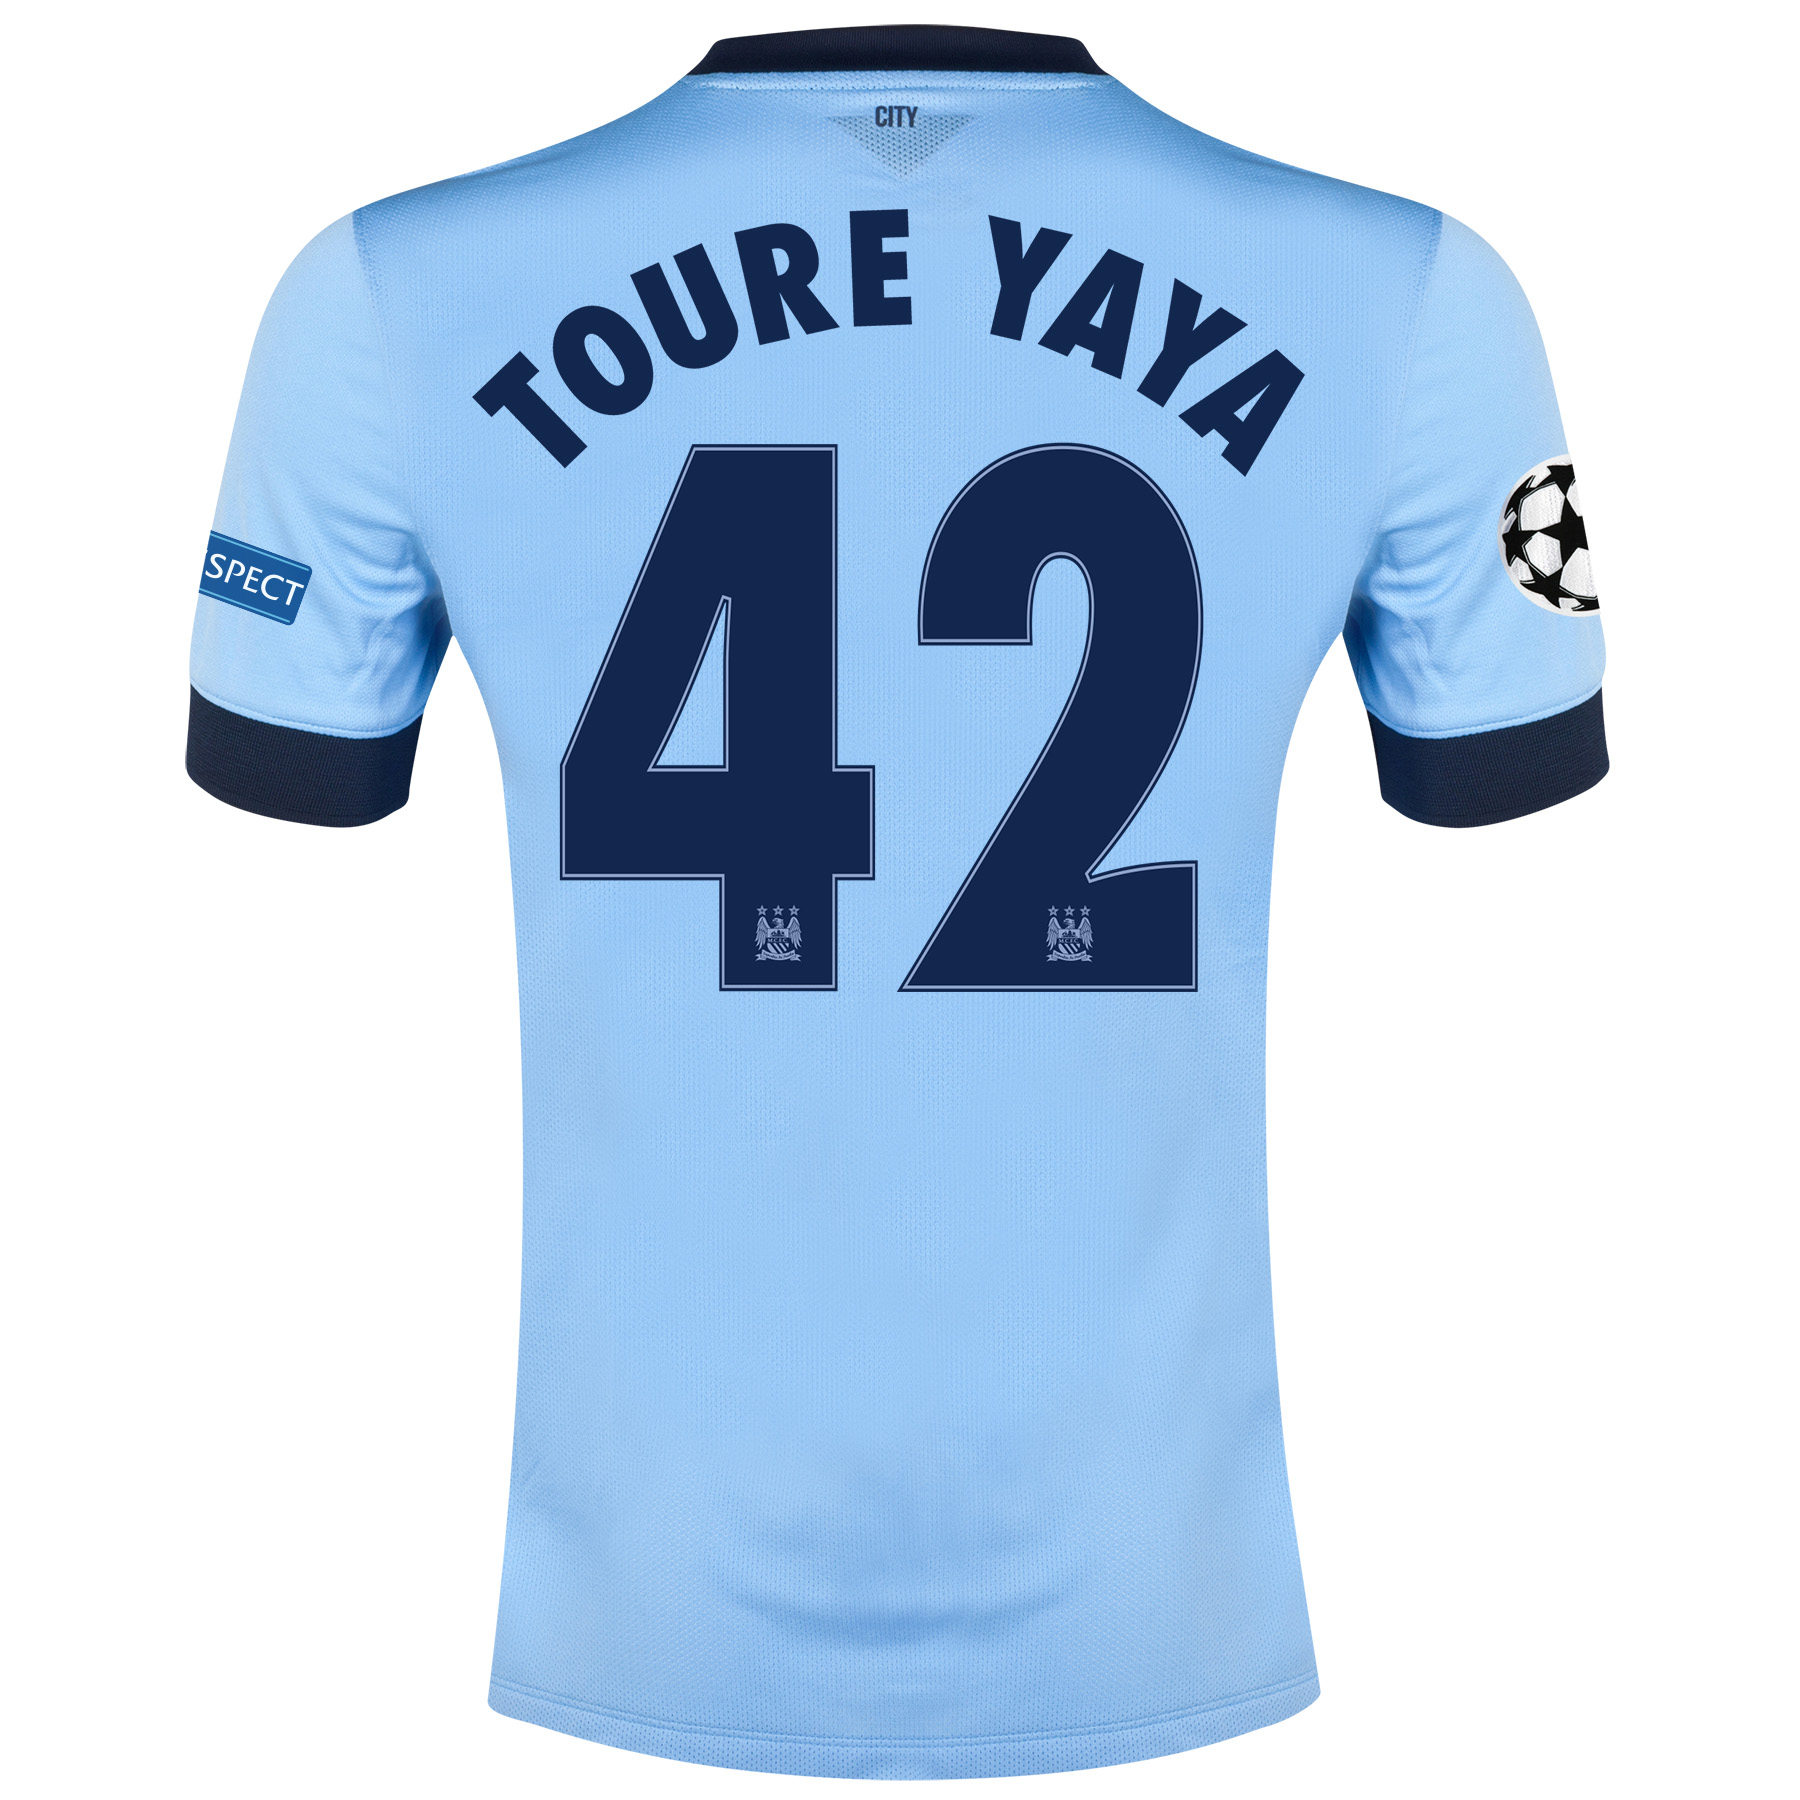 Manchester City UEFA Champions League Home Shirt 2014/15 Sky Blue with Toure Yaya 42 printing